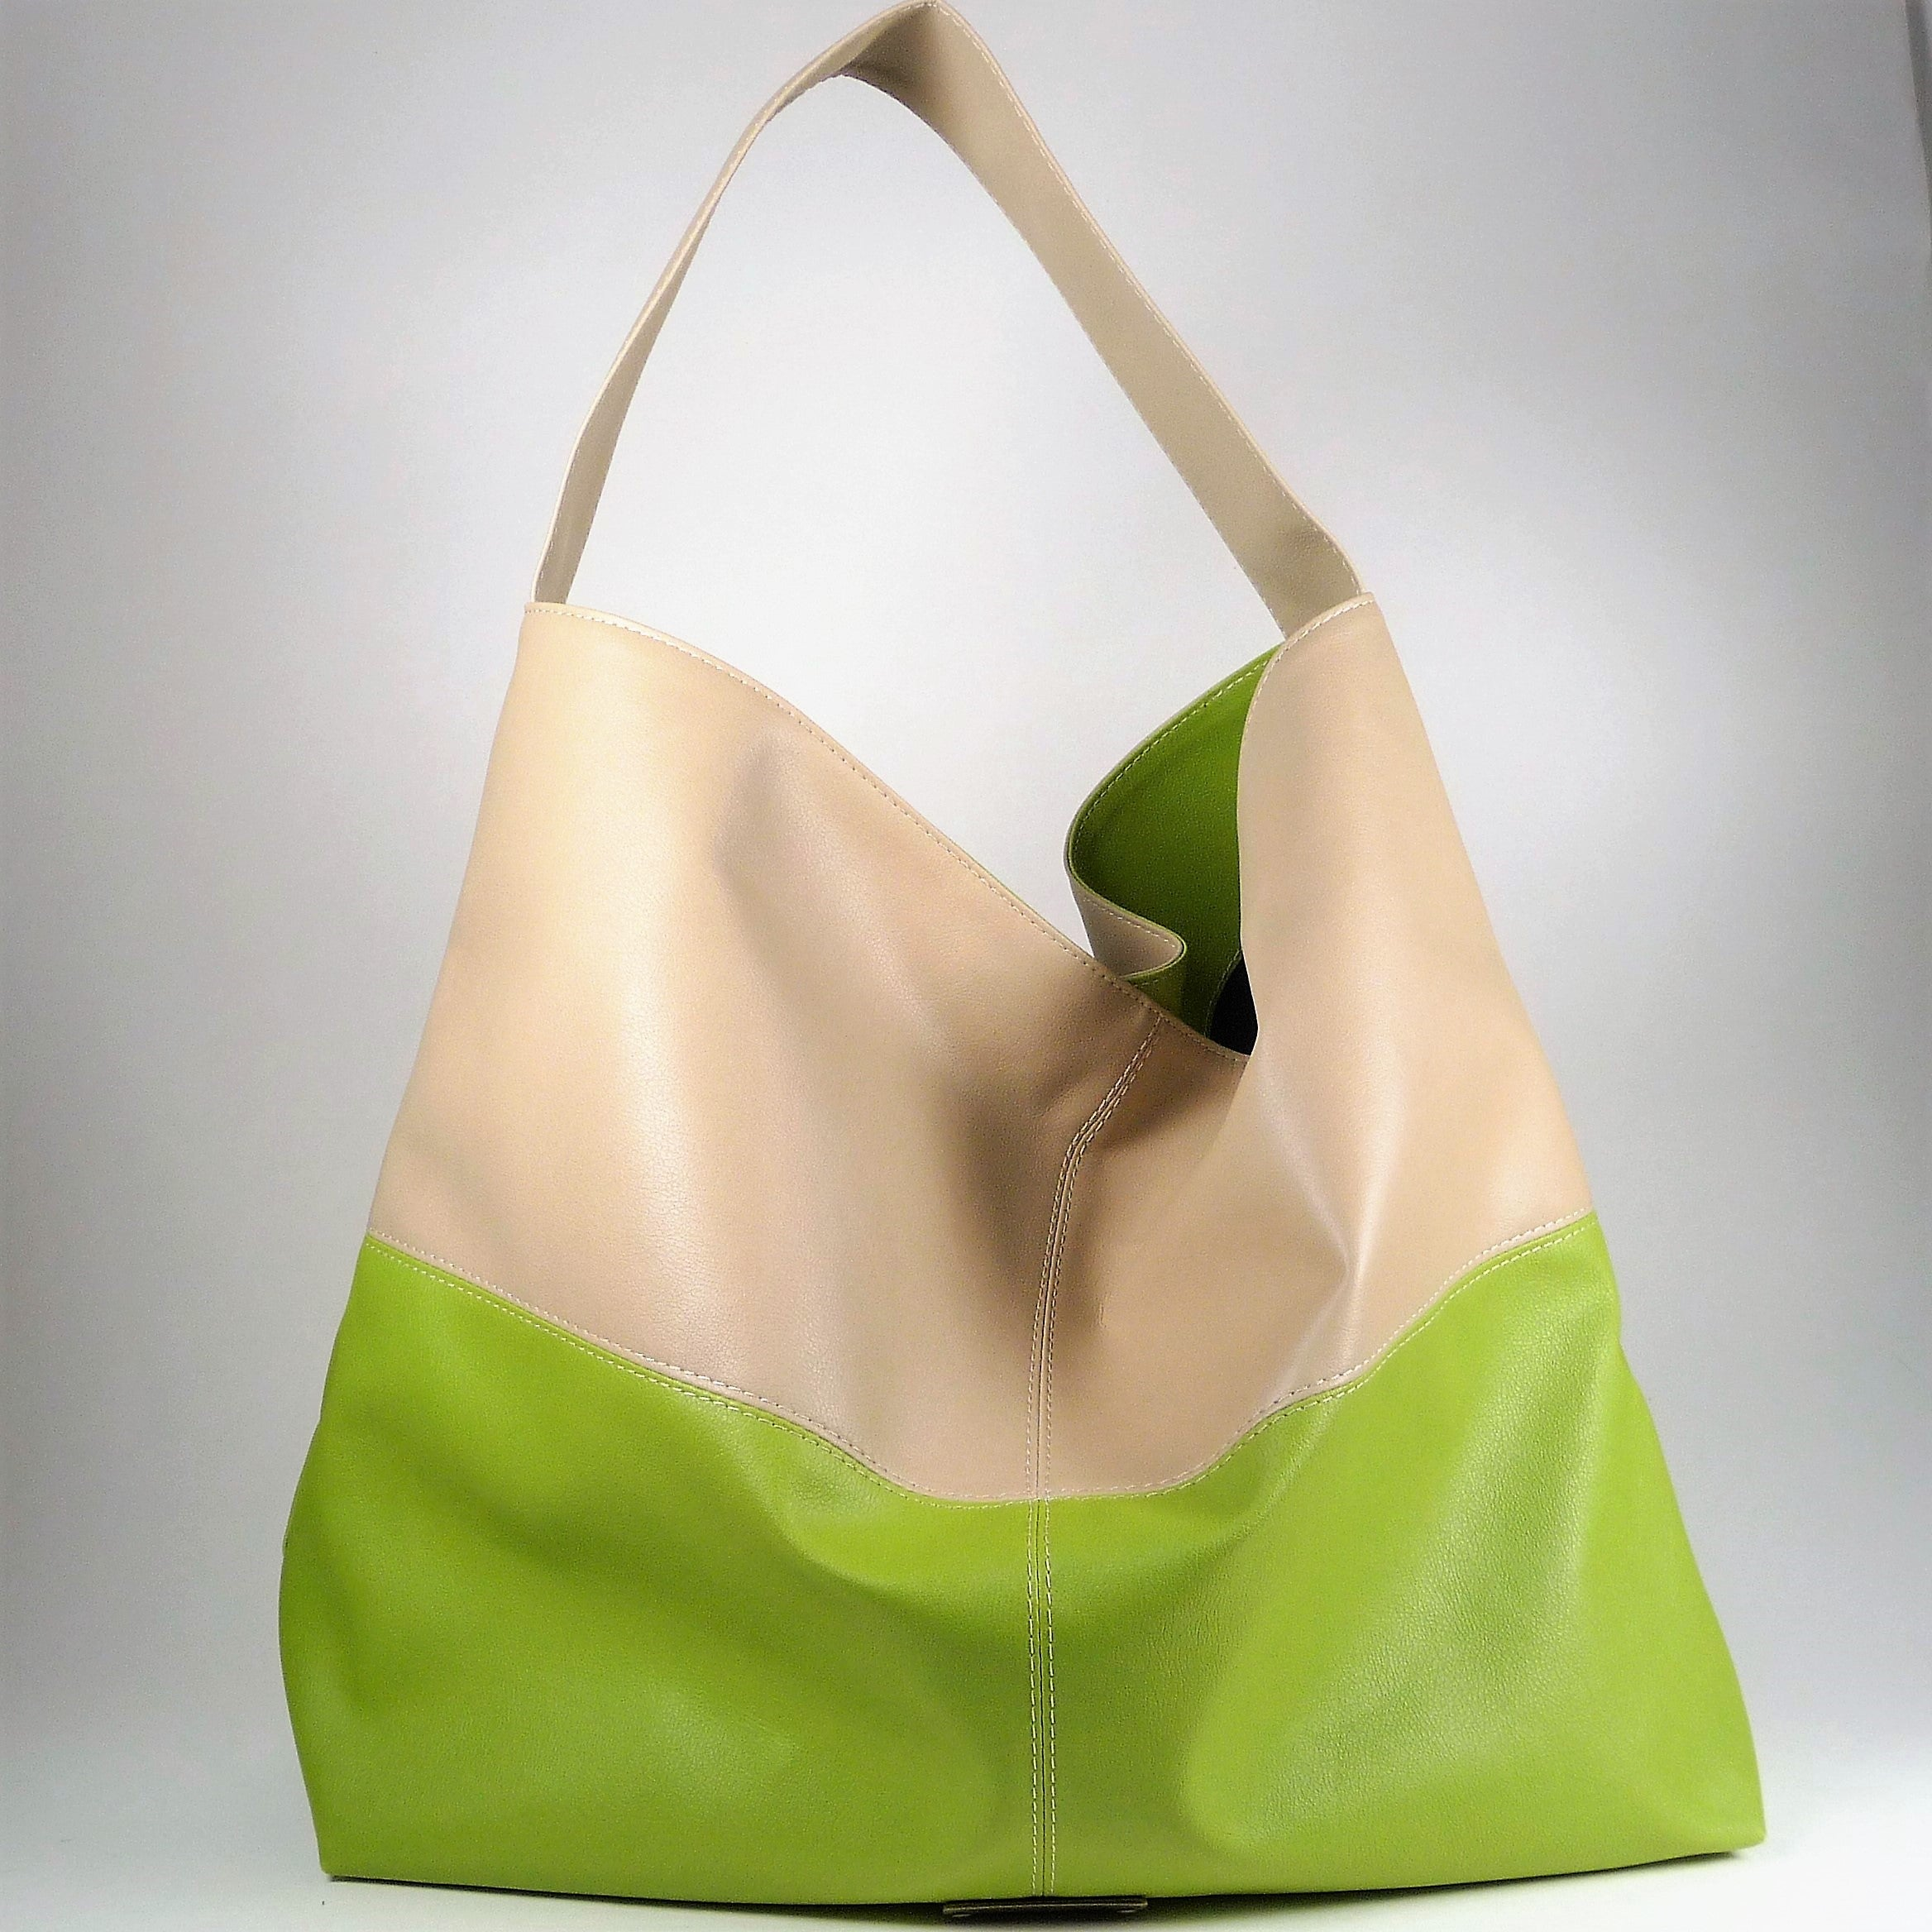 Vegan HOBO bag in Apple Eco Leather by R New - peryan vegan a5a8464cbd259